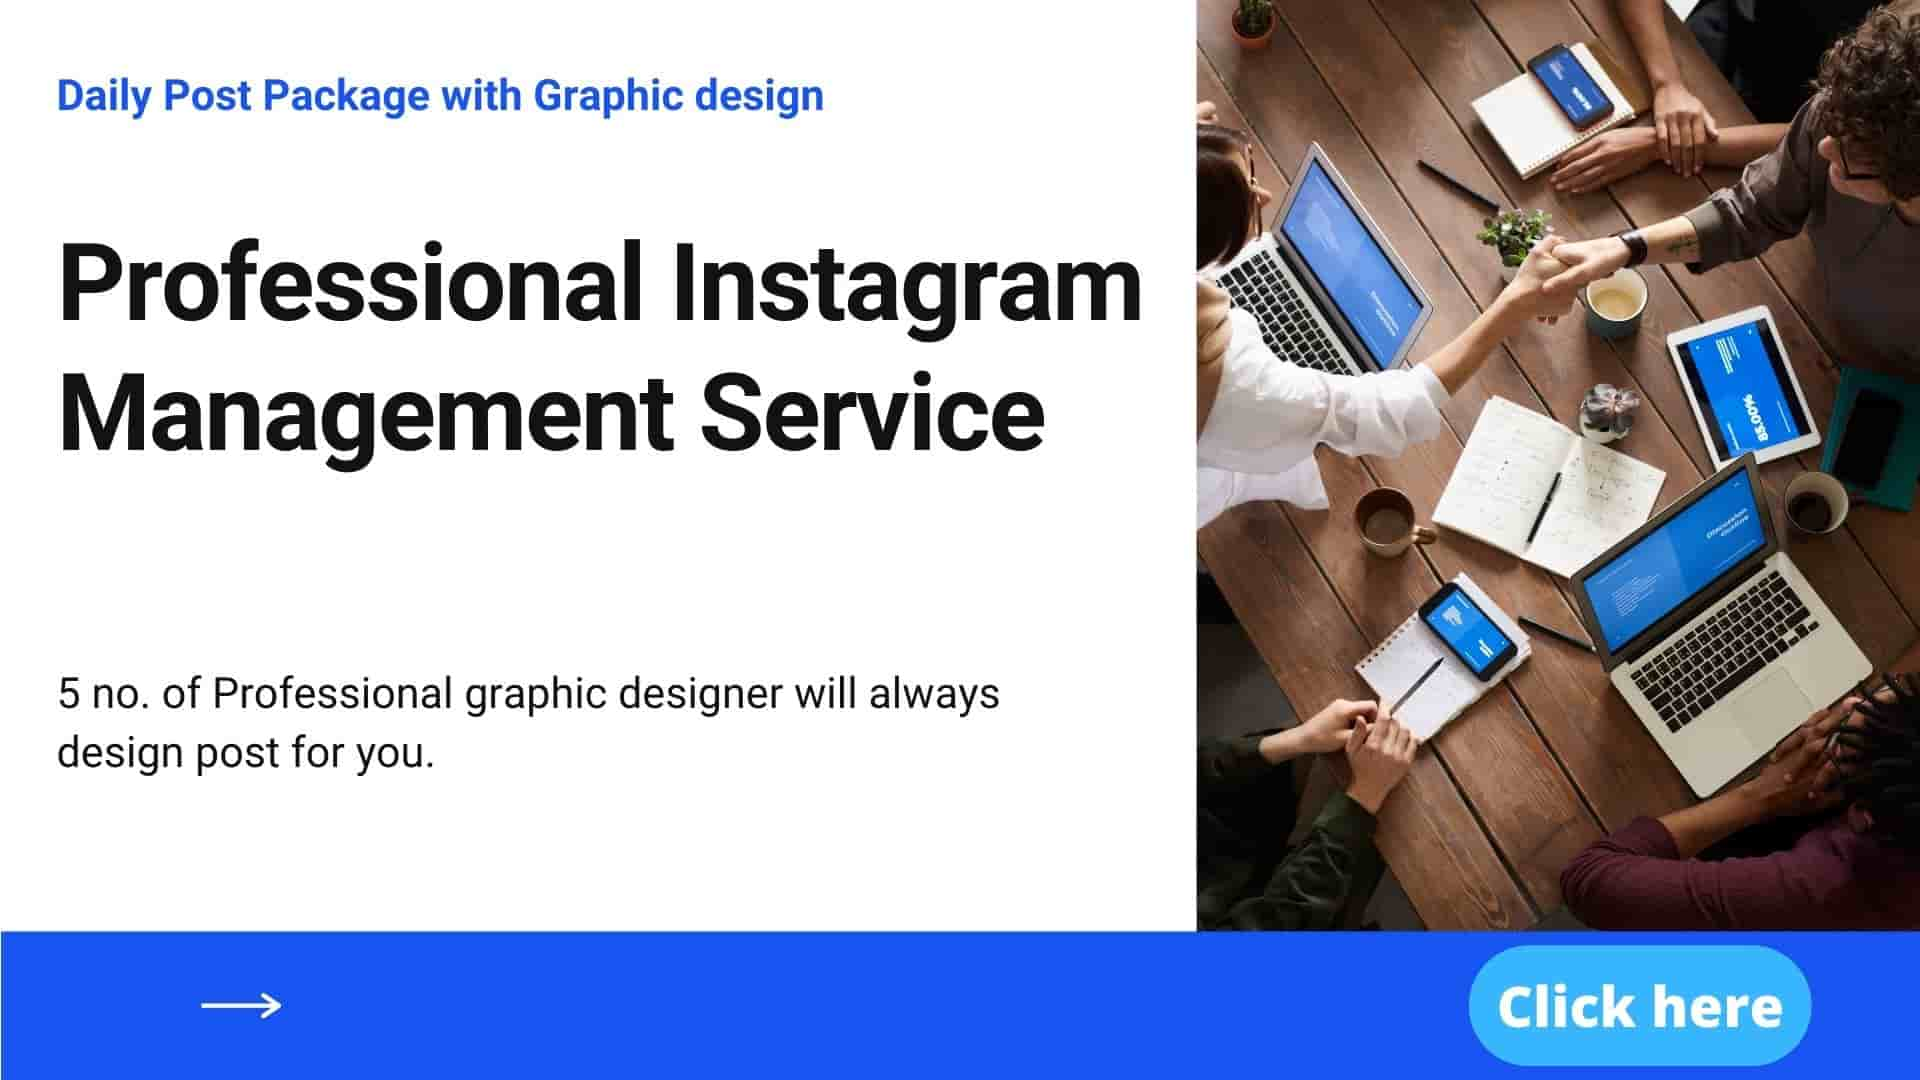 Professional Instagram Management Service to Help You Grow Fast.